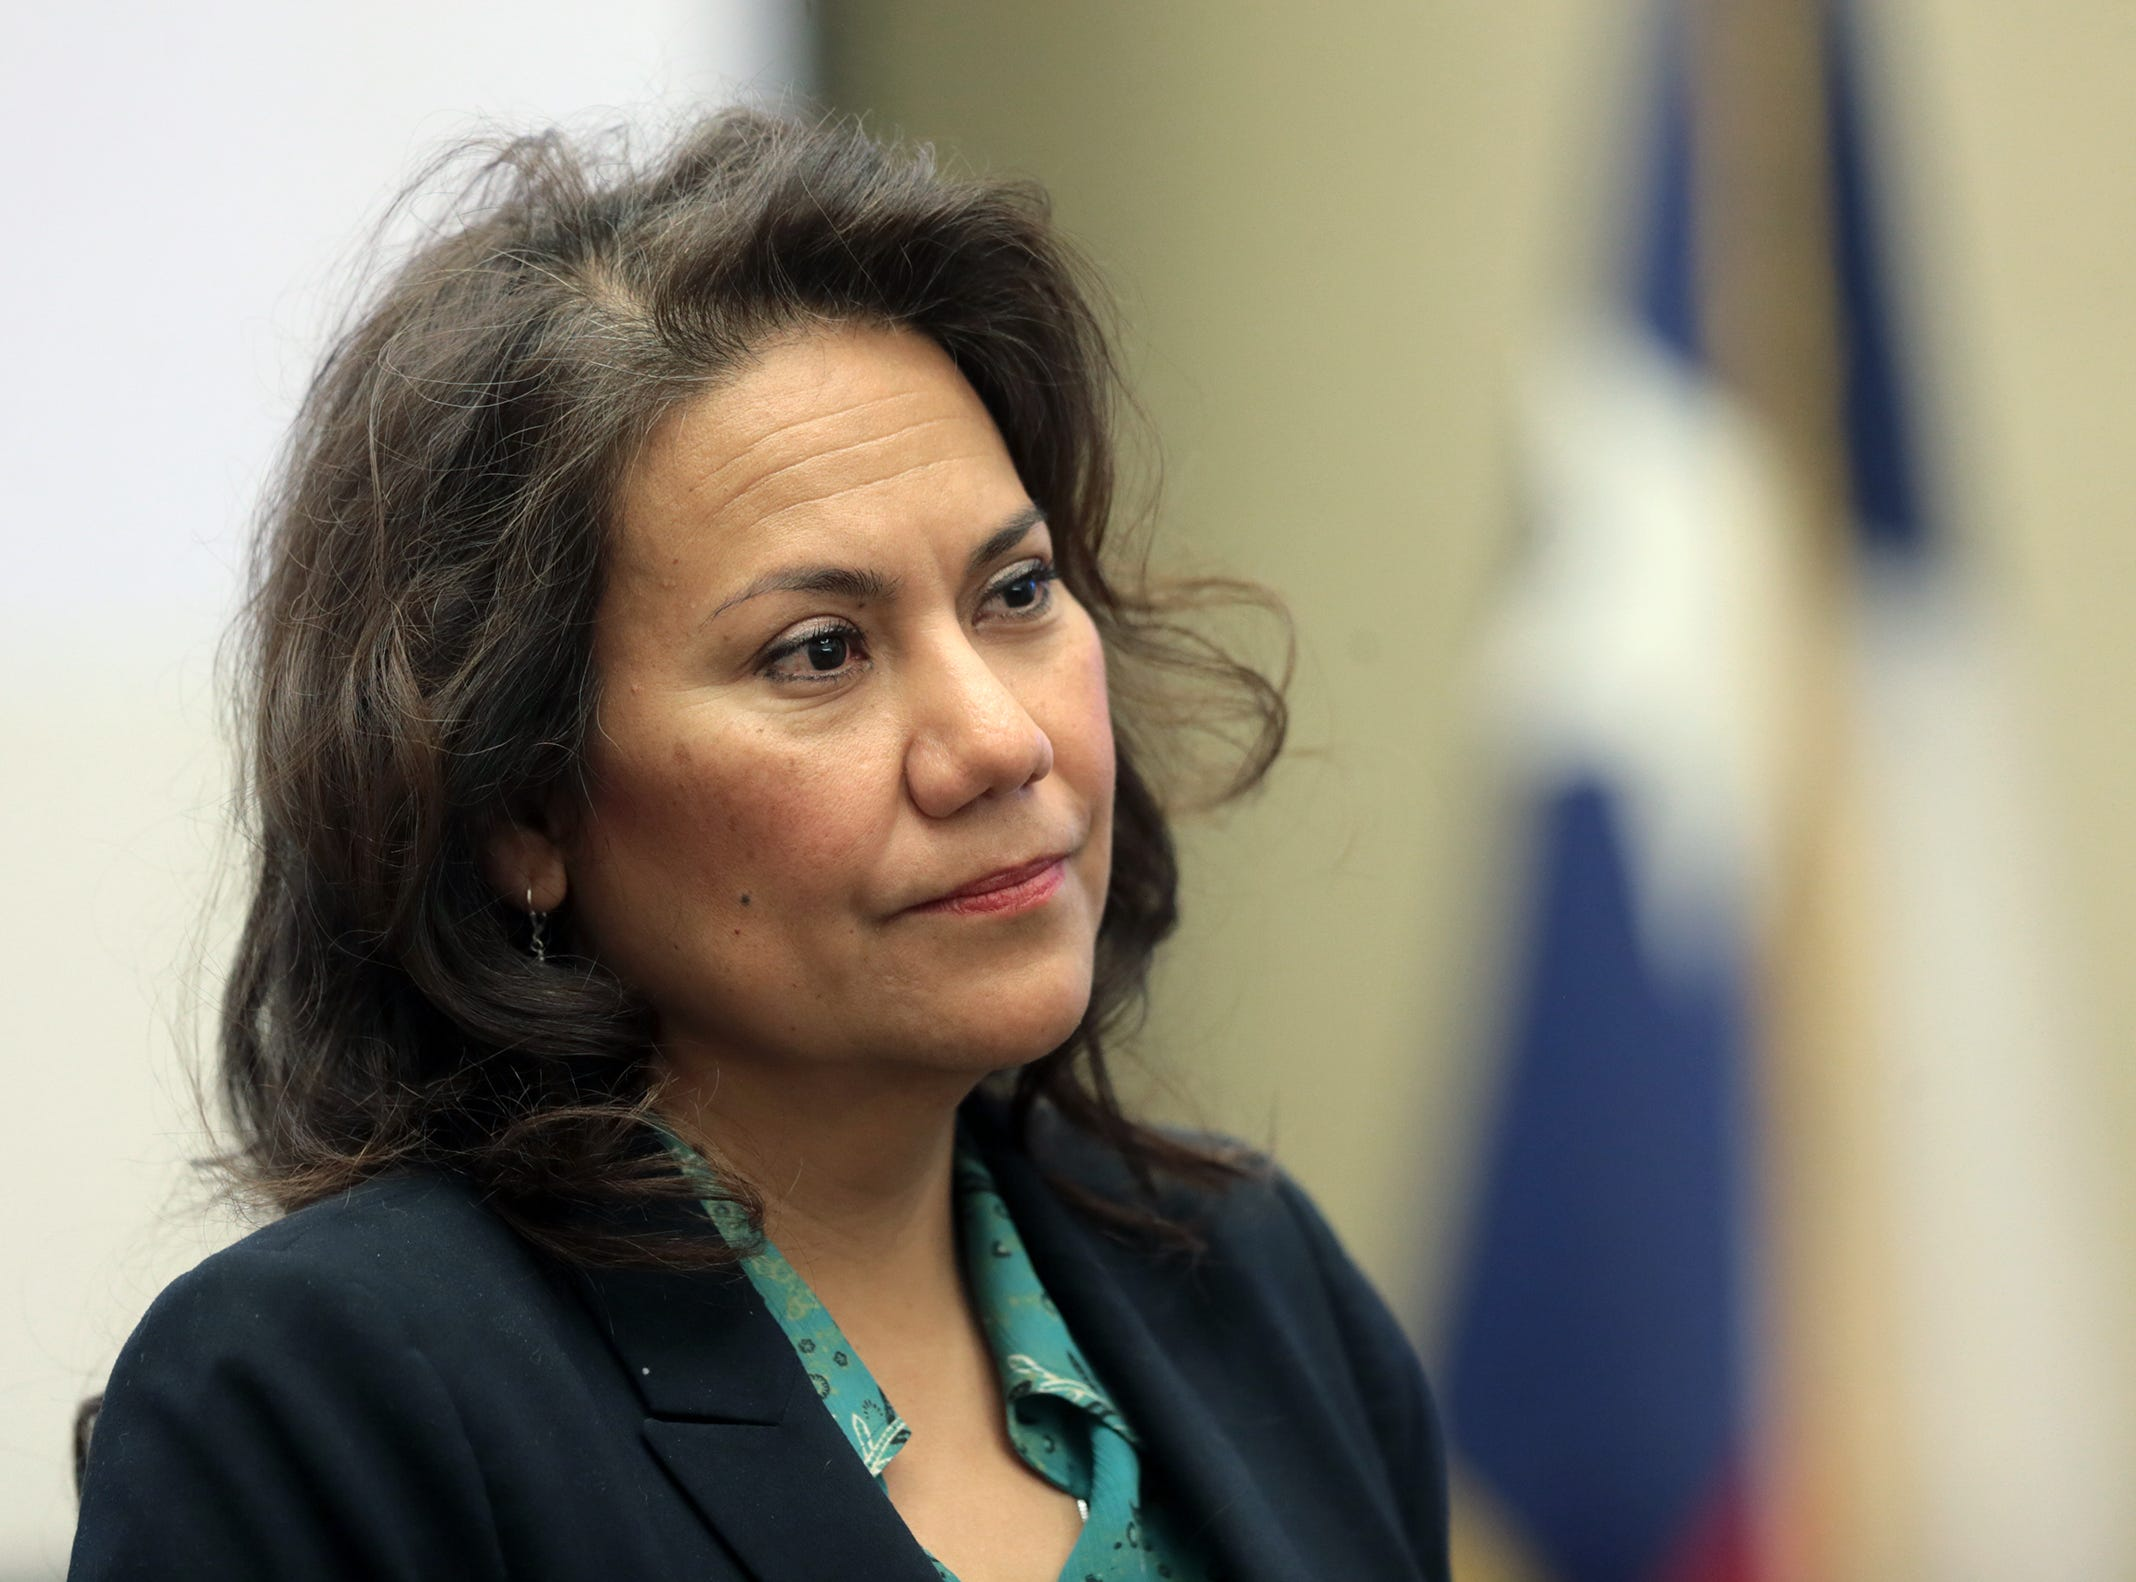 U.S. Rep. Veronica Escobar, D-El Paso, held her first monthly town hall meeting at the El Paso Community Foundation. Escobar discussed the government shutdown, immigration and veteran issues.